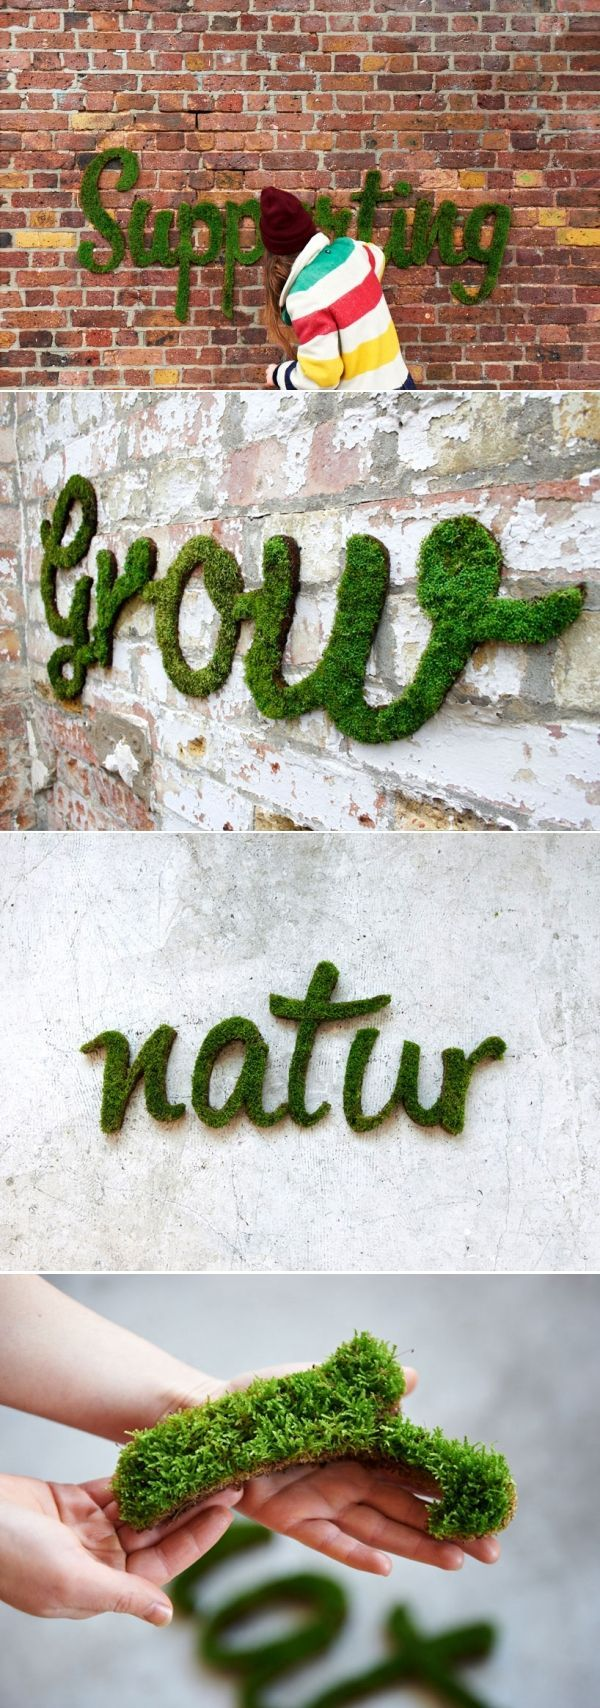 Have you ever considered decorating your outdoor fence? If you are still thinking, check out our latest exquisite collection of Inspiring Garden Fence Decor Ideas For Your Dream Garden.